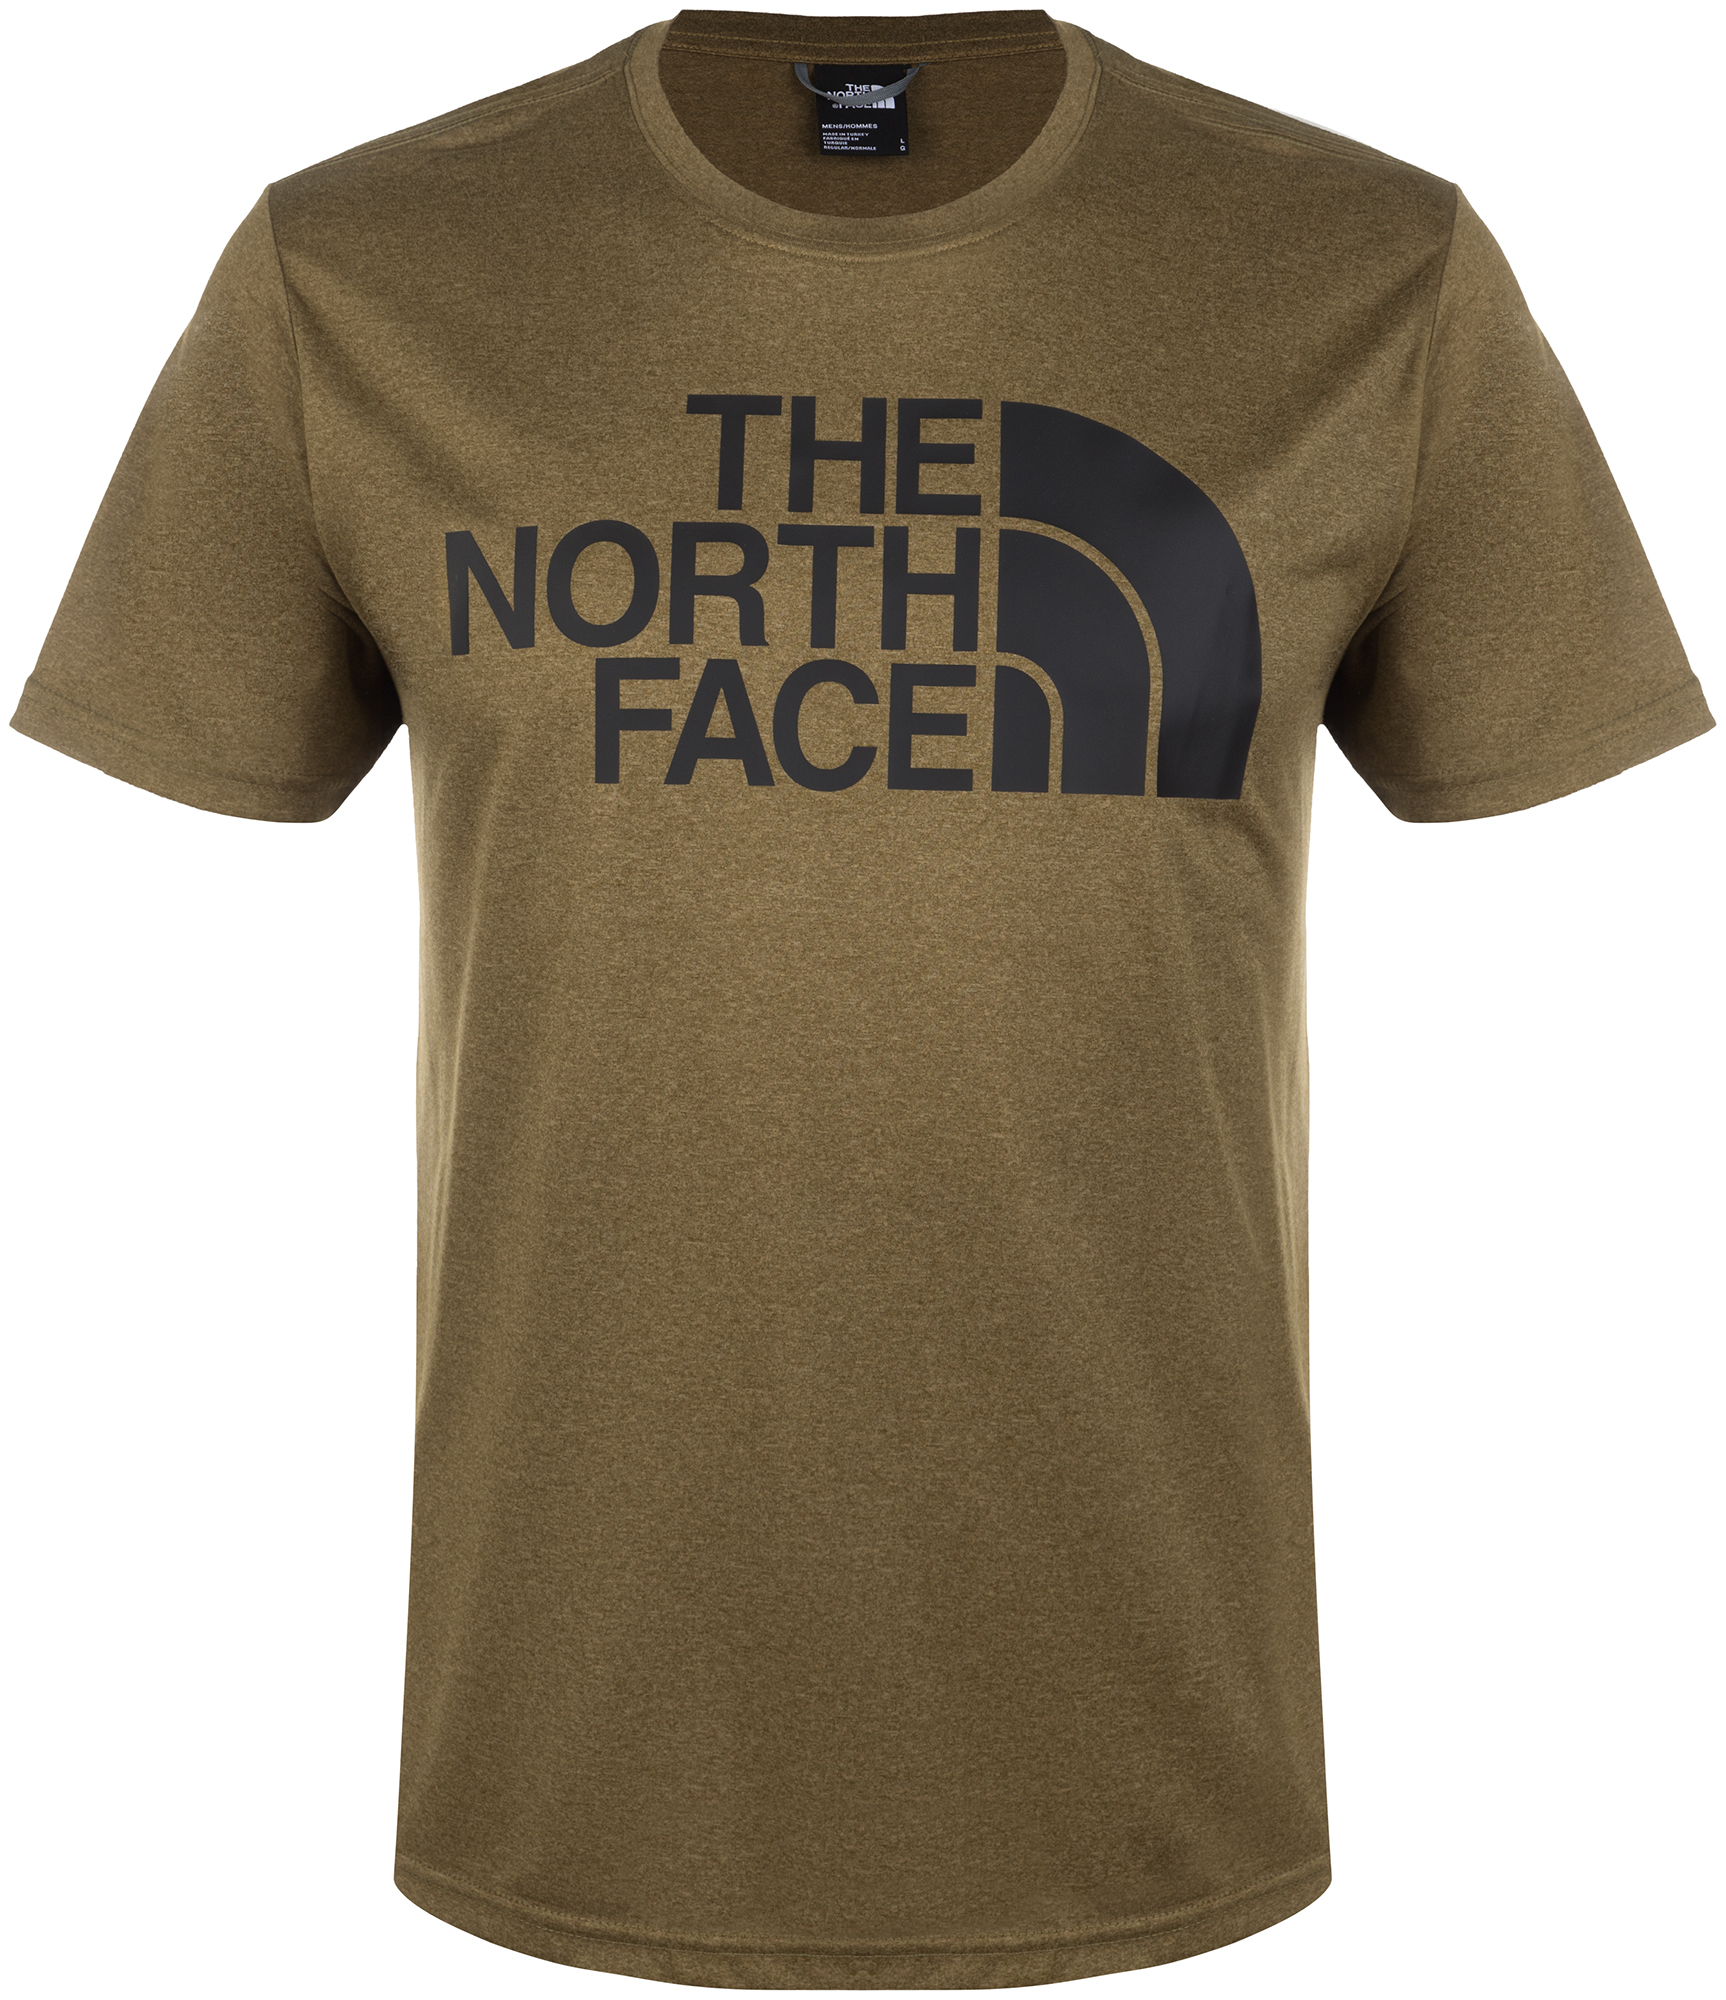 The North Face Футболка мужская The North Face Reaxion Easy, размер 48 футболка the north face the north face th016emanvy5